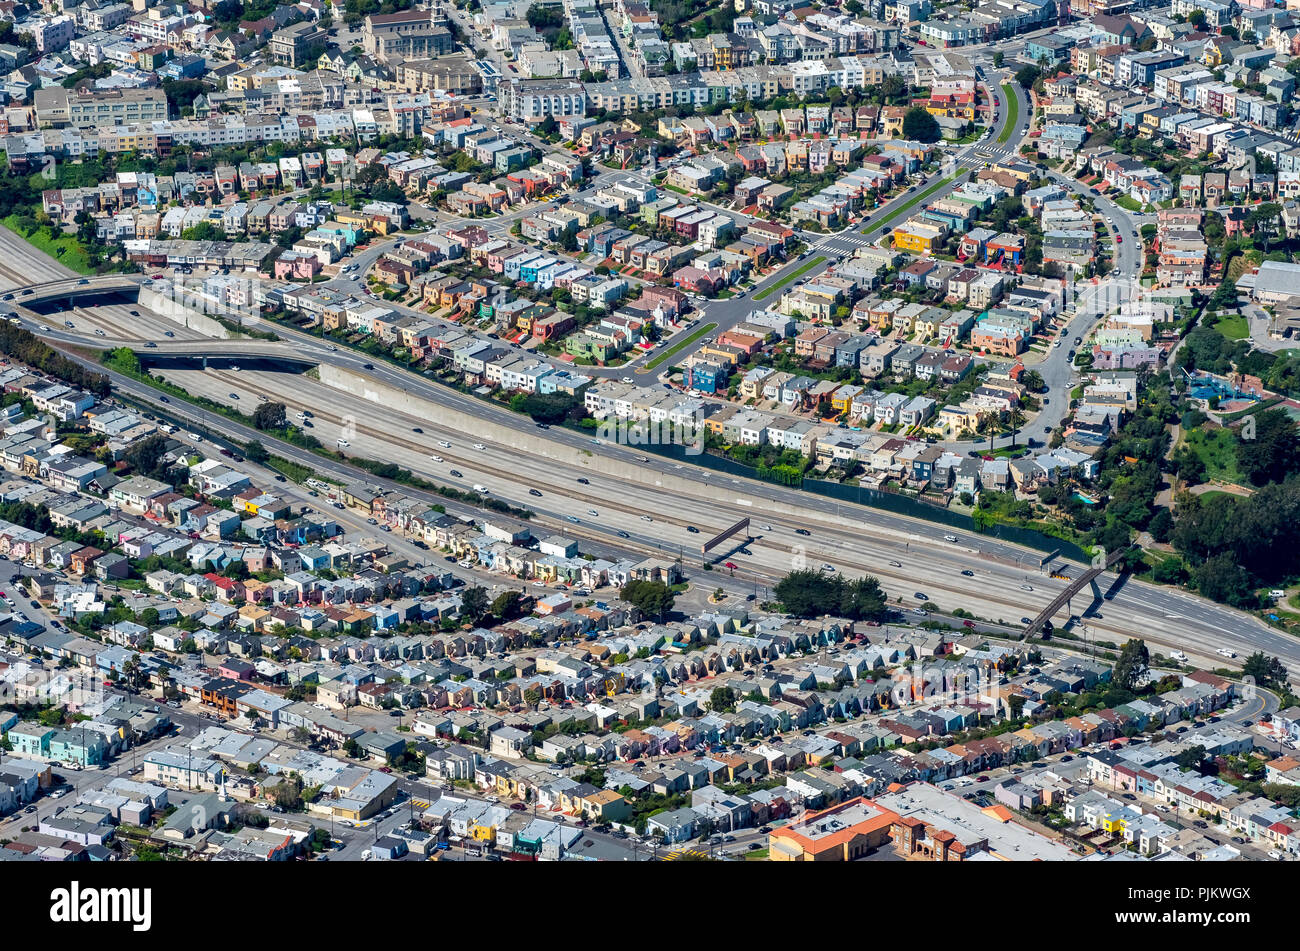 Offres et demandes de logement américain typique à l'autoroute, la pollution par le bruit, voisinage bruyant, South San Francisco, San Francisco, États-Unis d'Amérique, Californie, USA Photo Stock